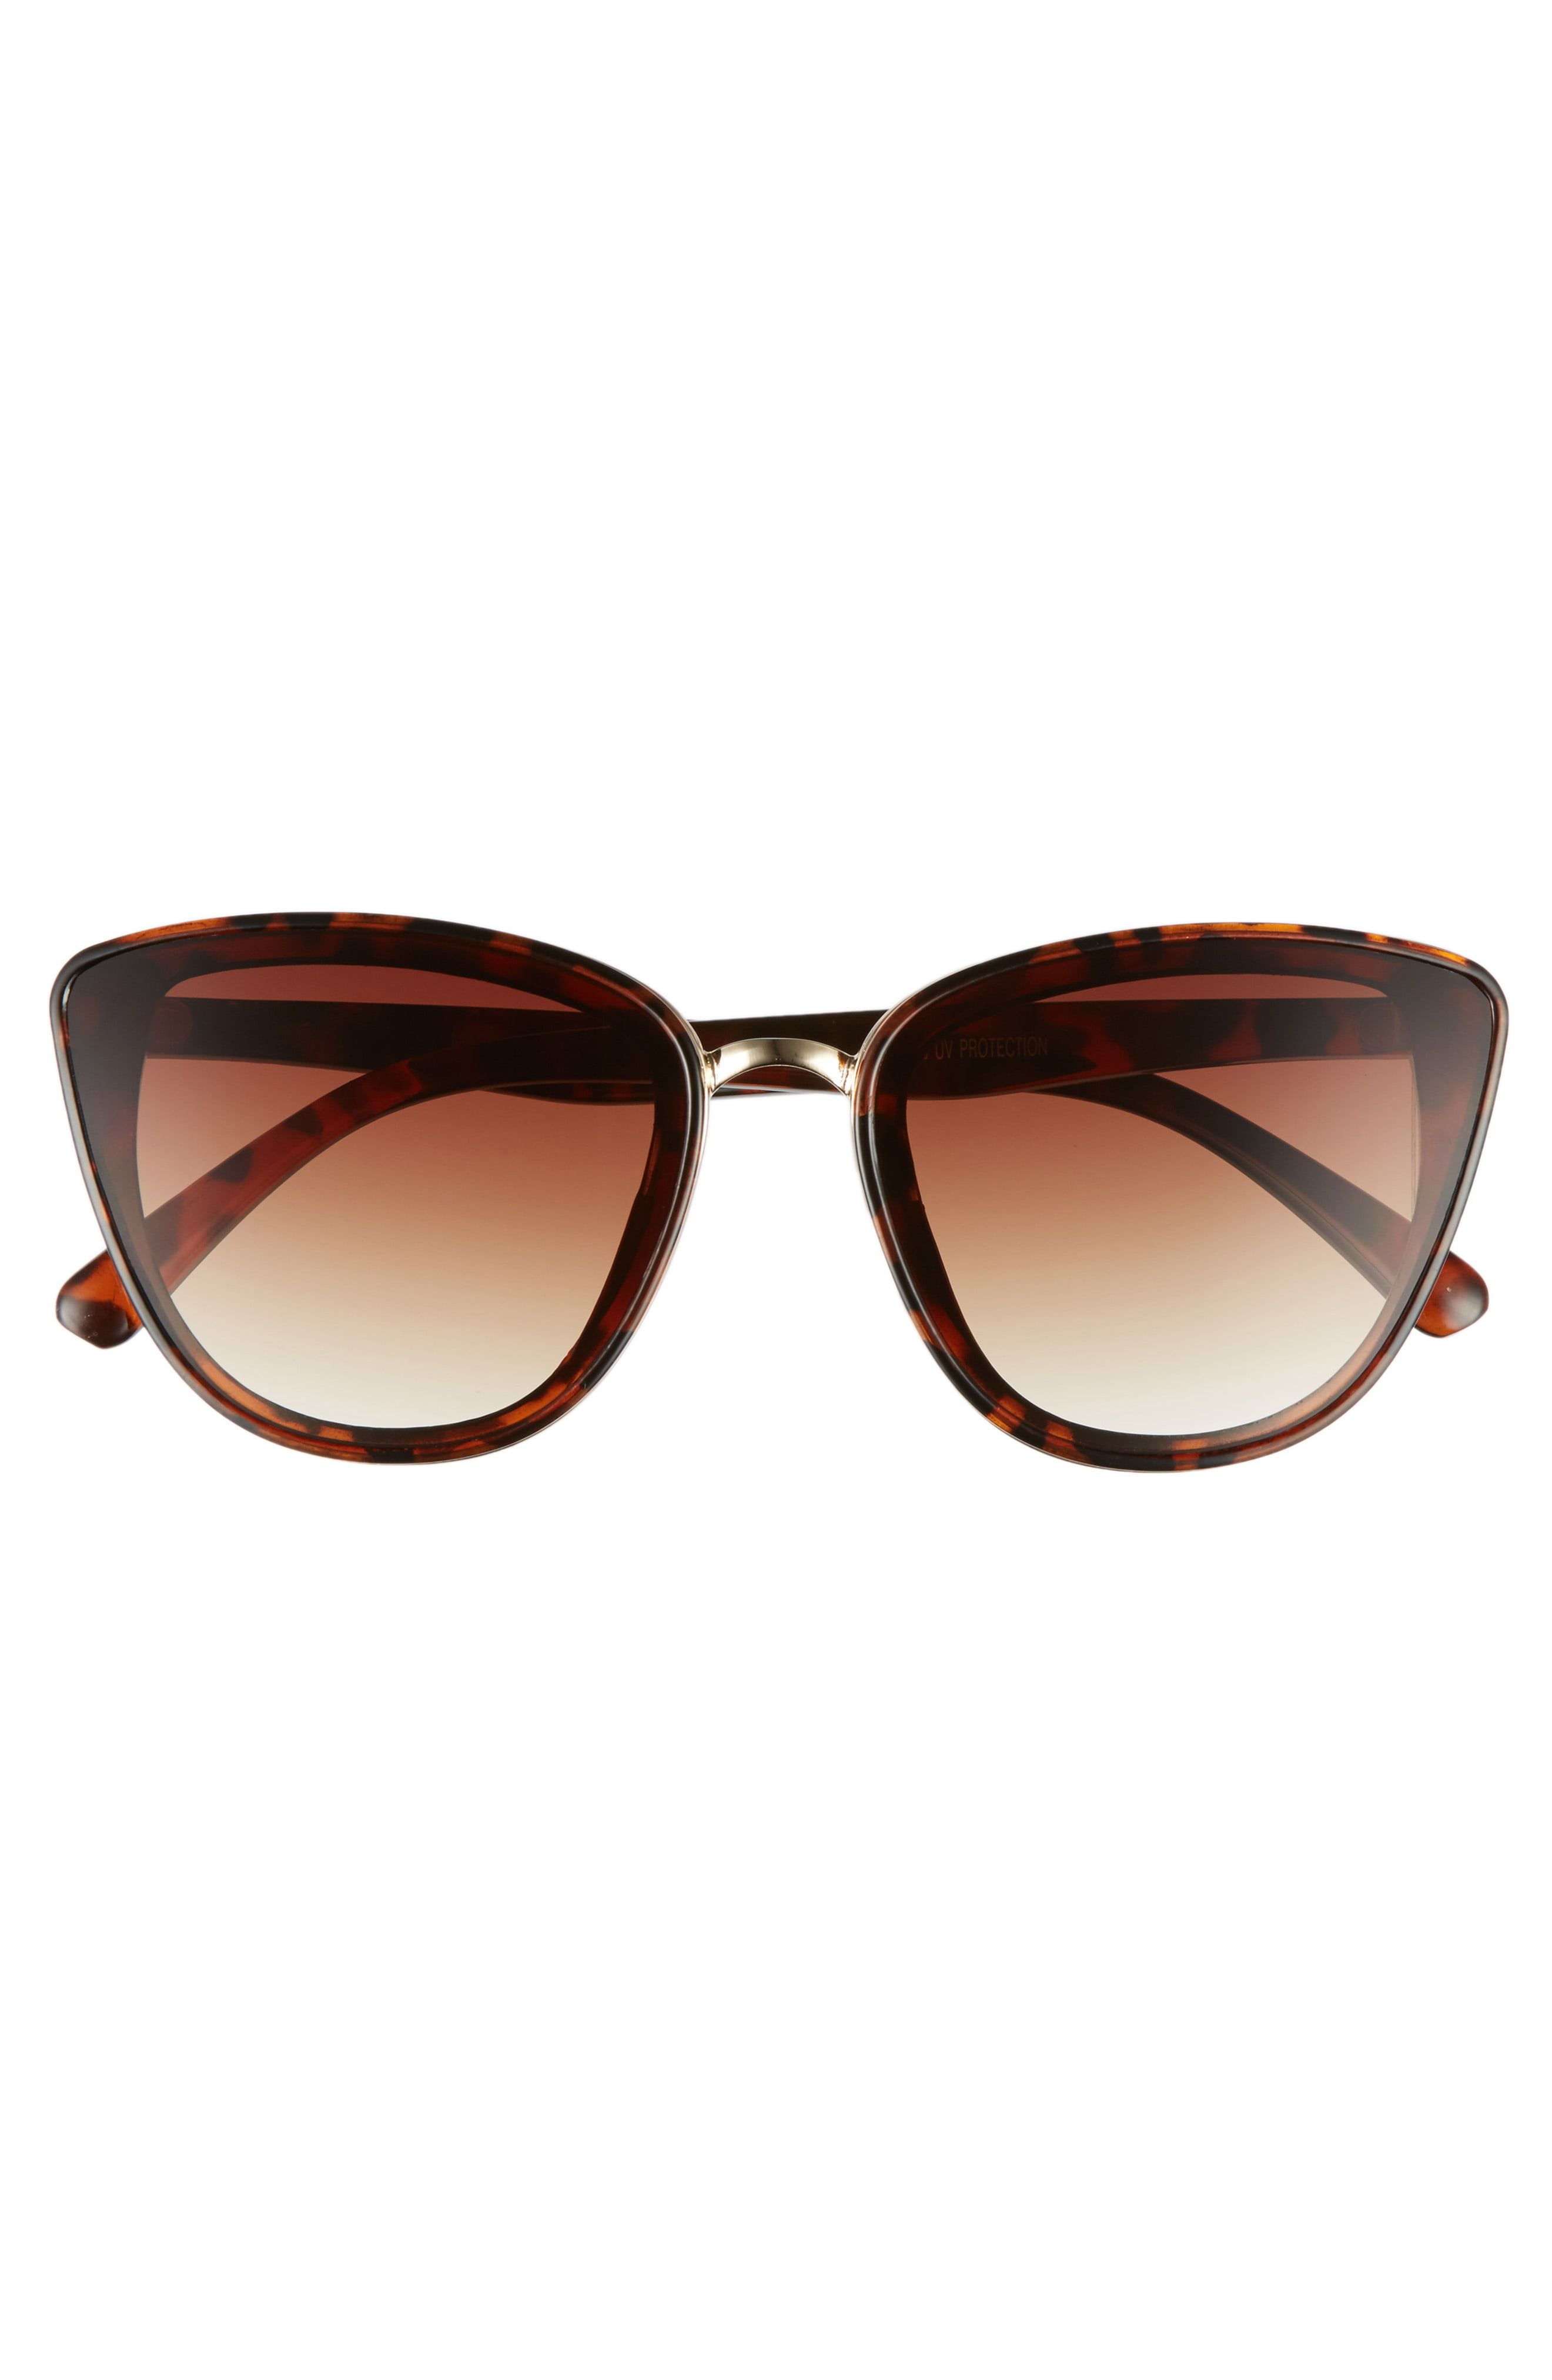 861ad2b3cf46 12 Best Sunglasses for Women in 2019: 11 Styles for Any Face Shape